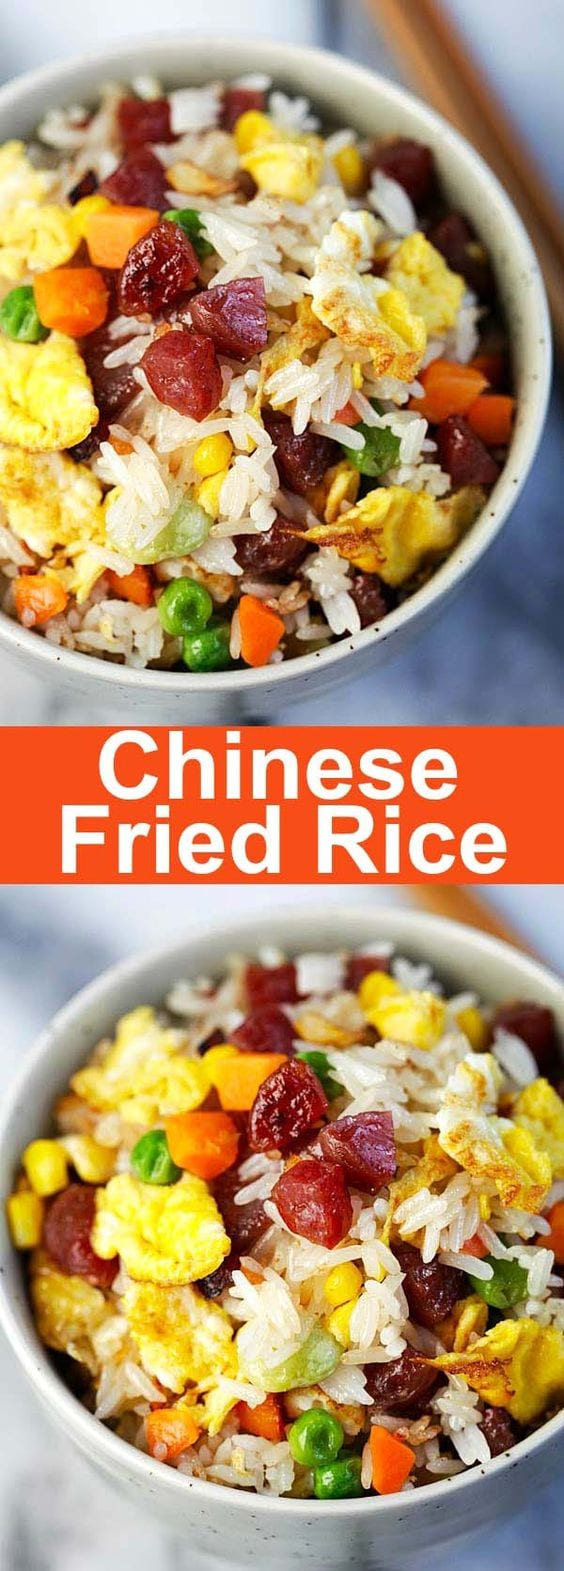 Chinese fried rice easy delicious recipes rasa malaysia fried rice homemade chinese fried rice recipe with chinese sausage vegetables eggs and forumfinder Image collections